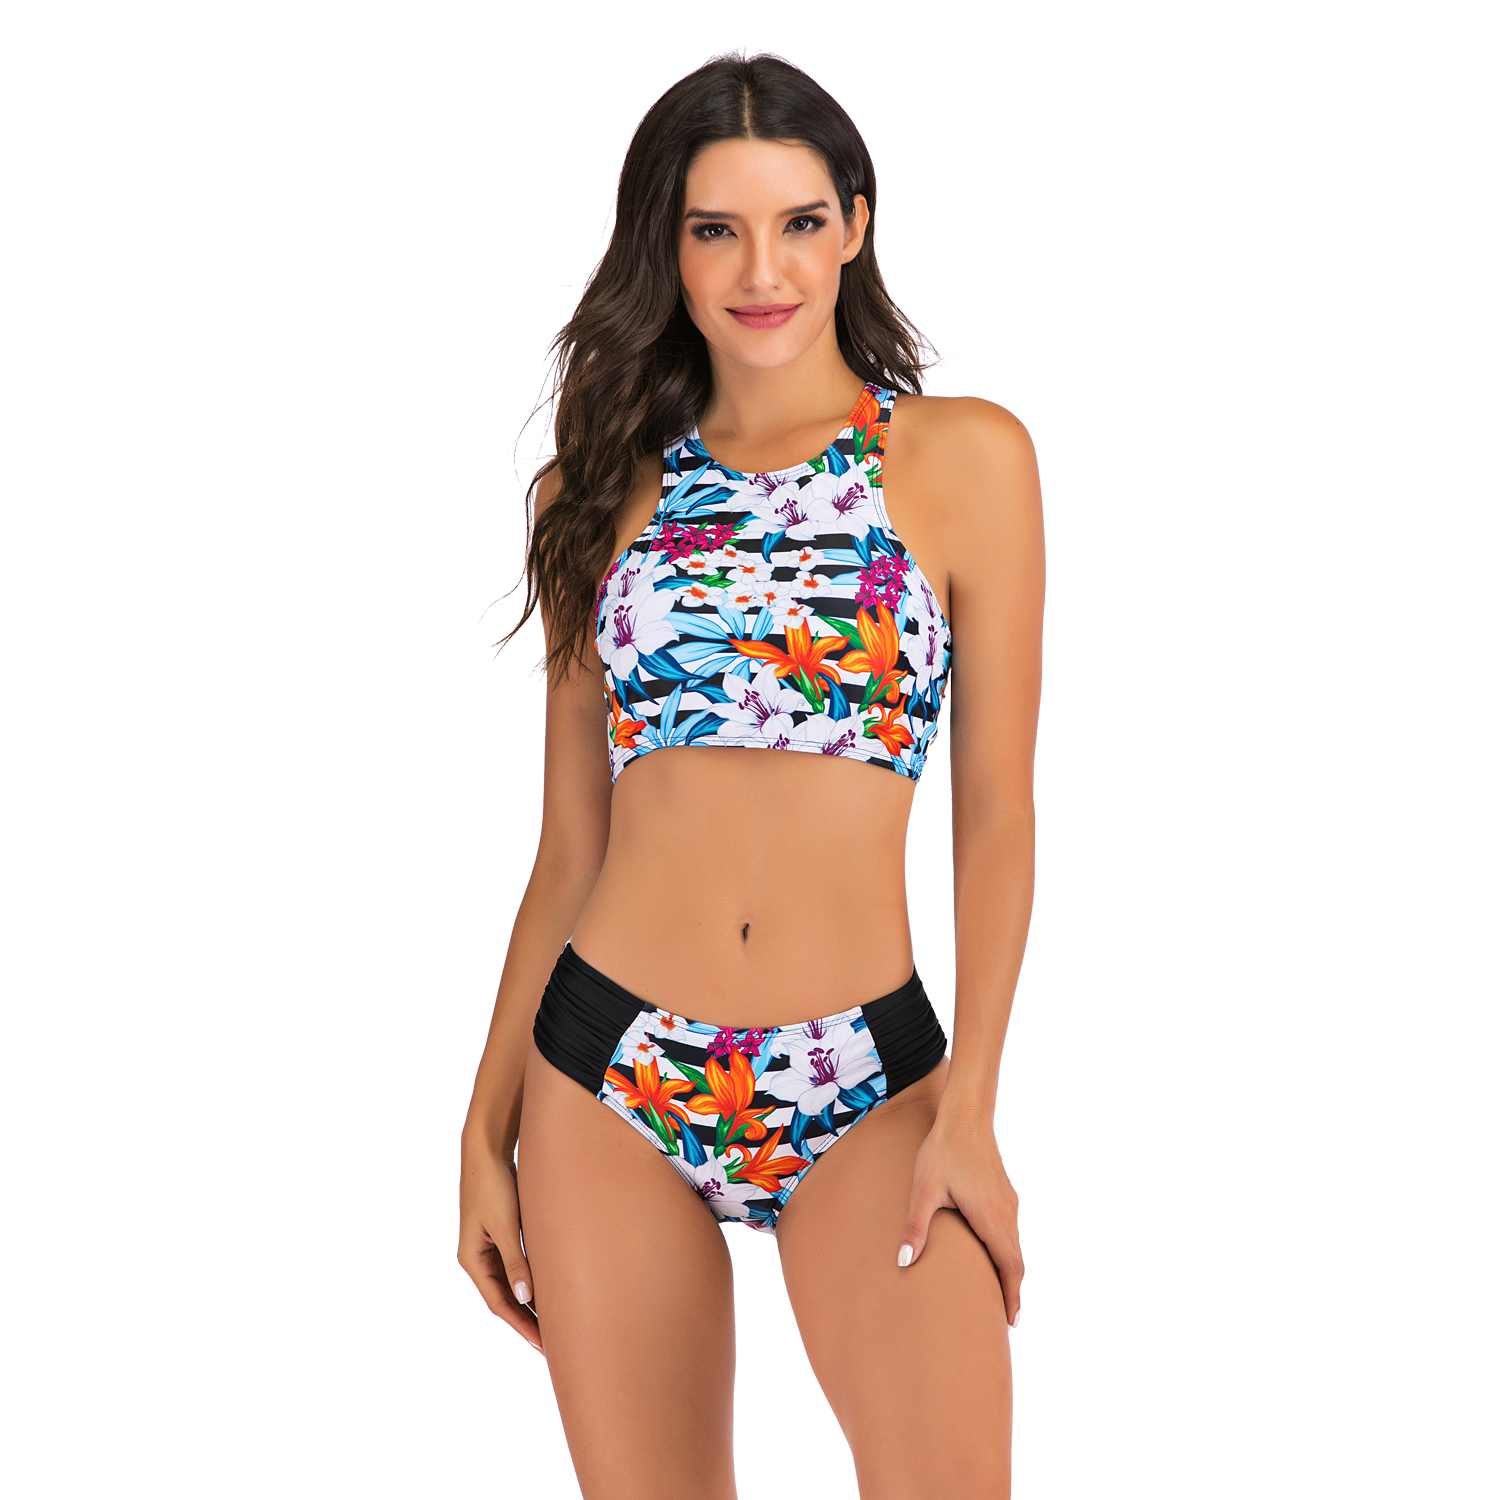 Sexy Bikinis Plus size Swimwear Women Mirco bikini 2020 mujer Two Piece Swimsuit swimming suit Beach Sport Swimsuit Set May 3